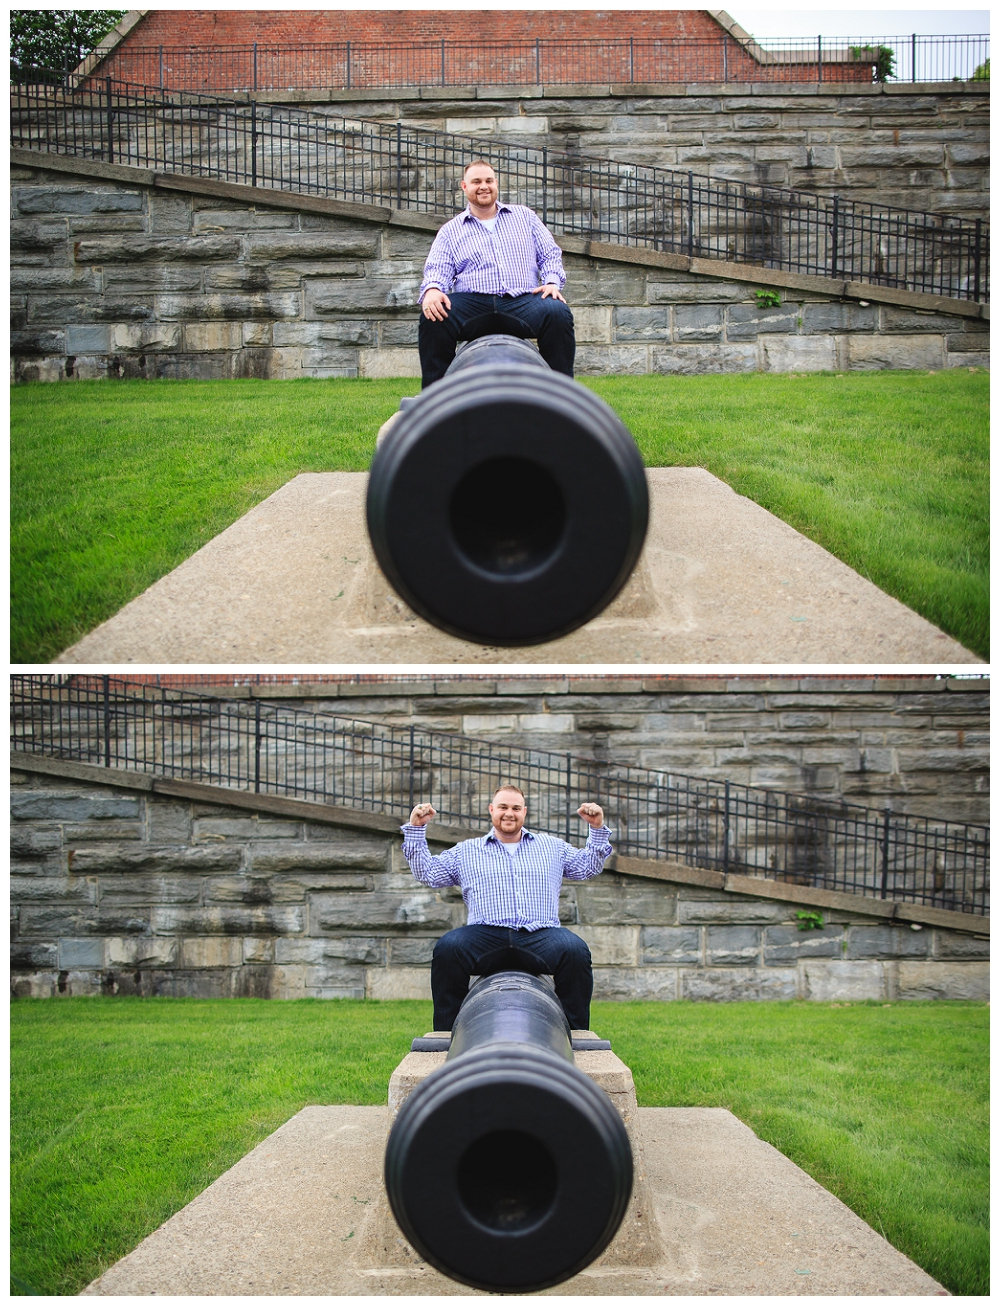 He just HAD to ride the cannon.